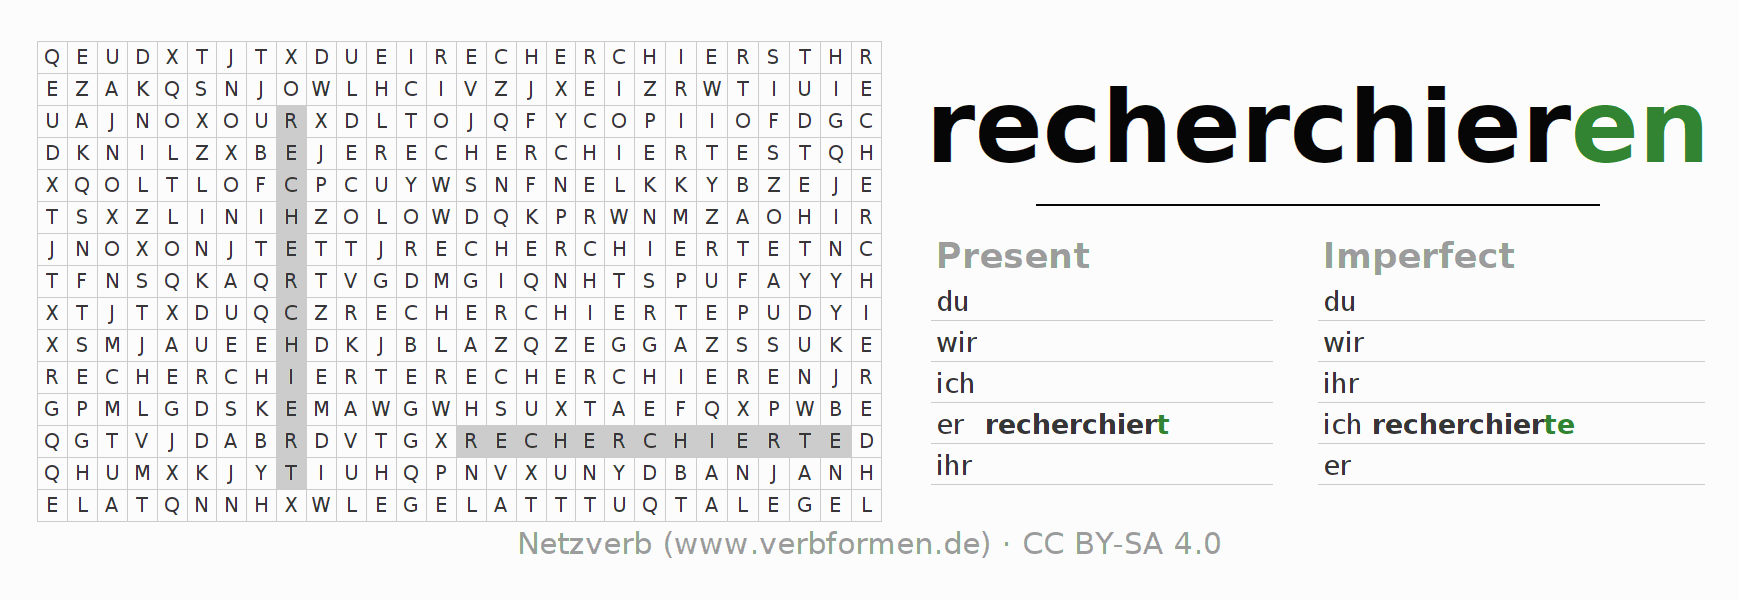 Word search puzzle for the conjugation of the verb recherchieren